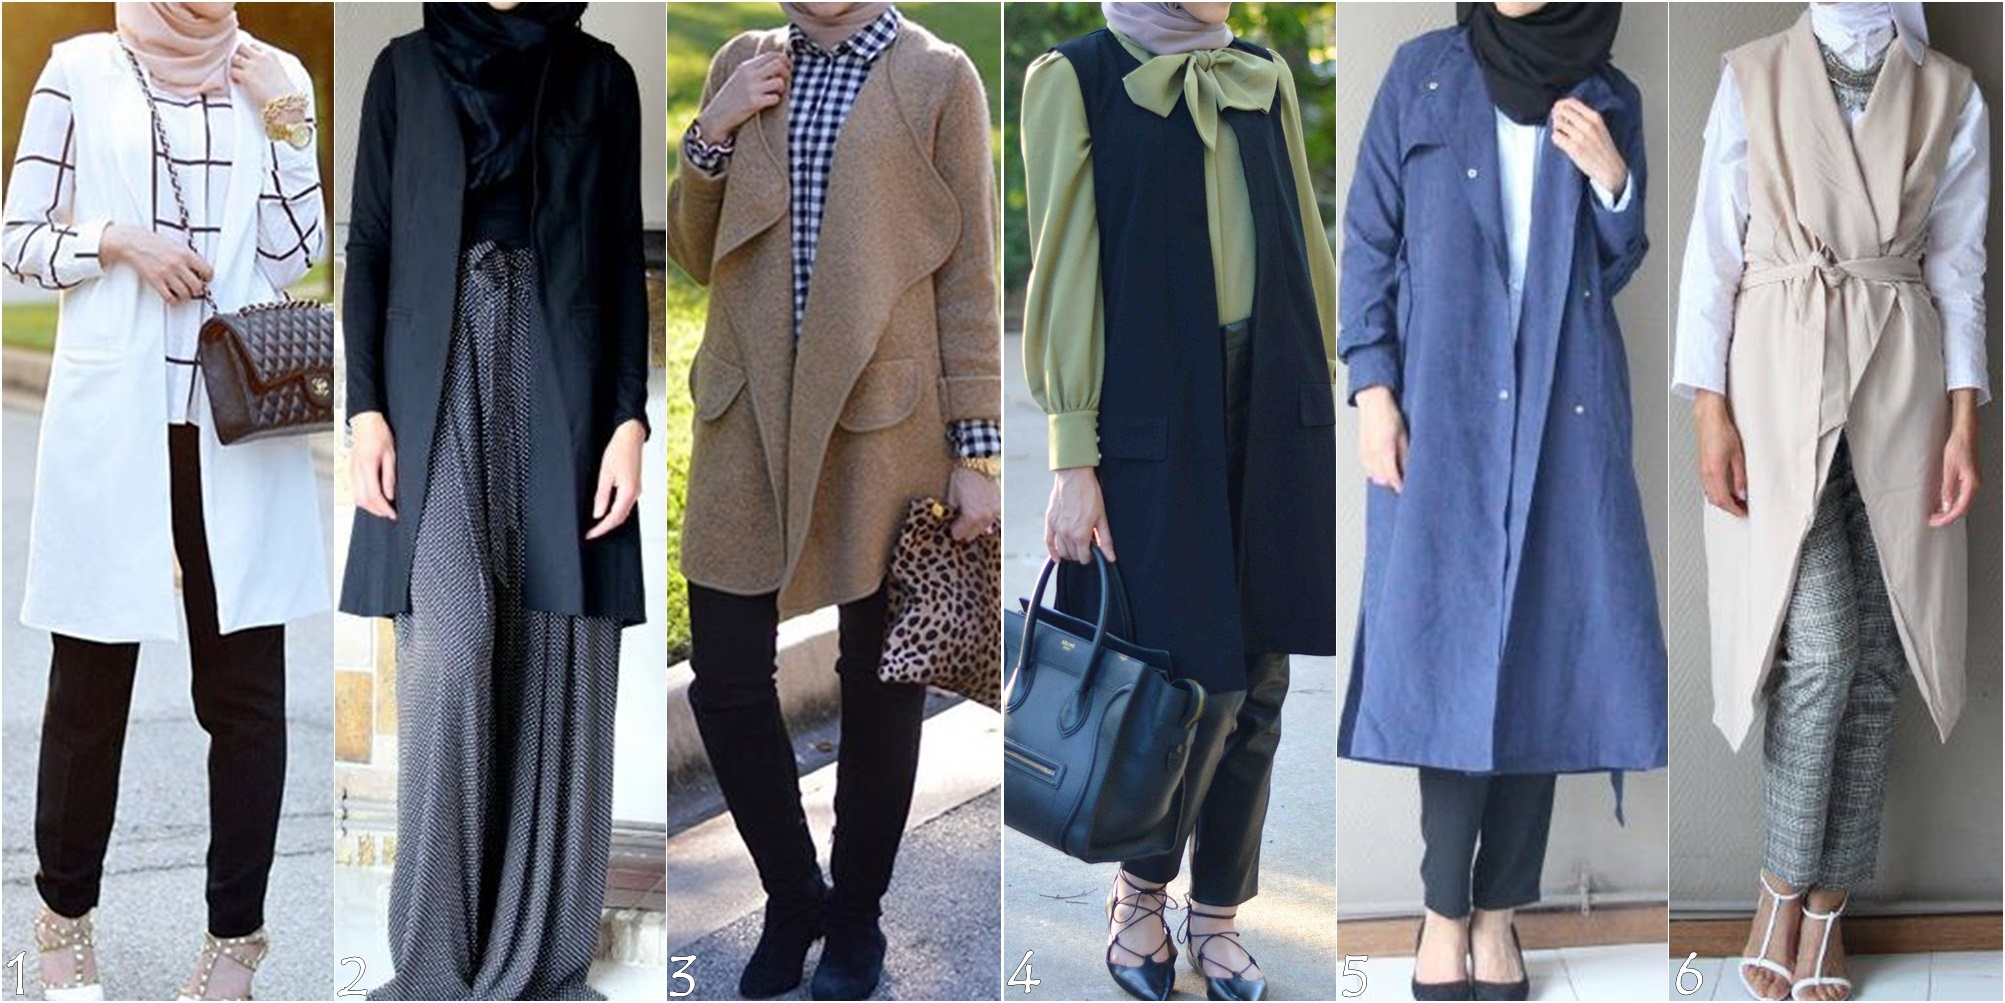 24 Styles Hijab très Fashion - Hijab Mode 20174